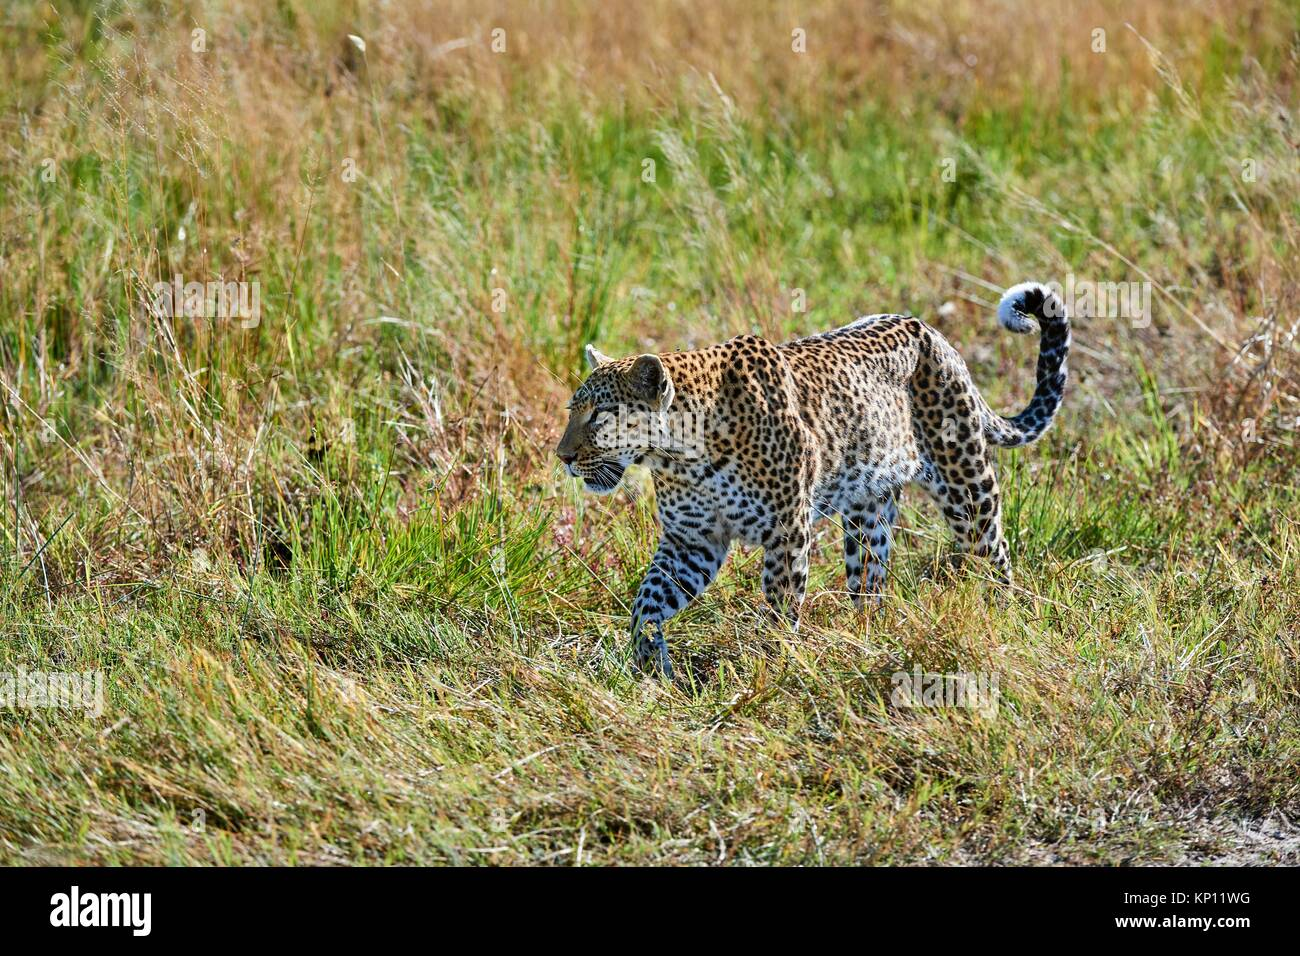 African leopard female (Panthera pardus) walking through grassland. Moremi National Park, Okavango delta, Botswana, - Stock Image